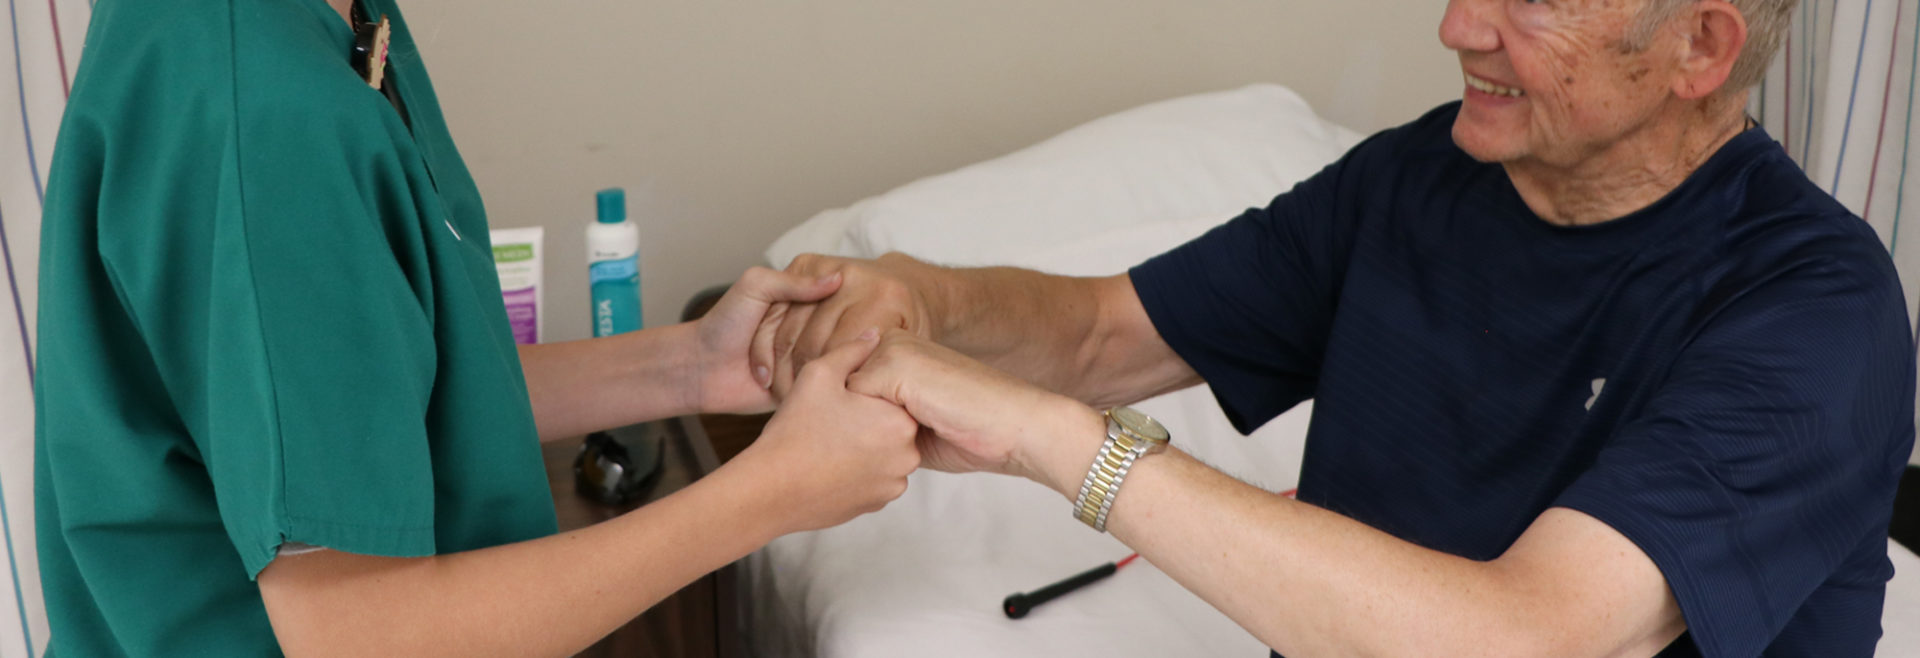 nursing student holding hands with a patient